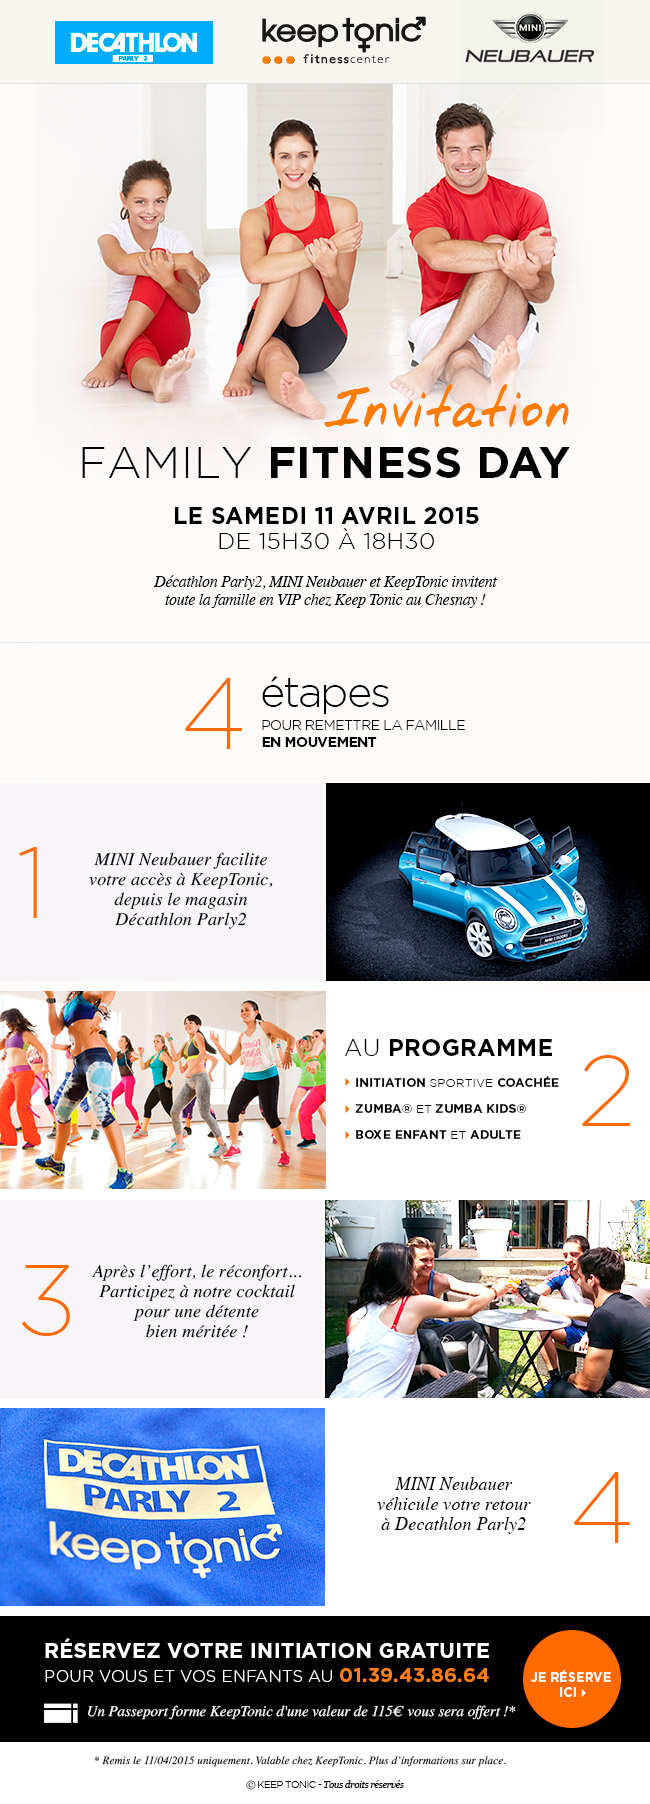 fitness day - Le samedi 11 avril 2015